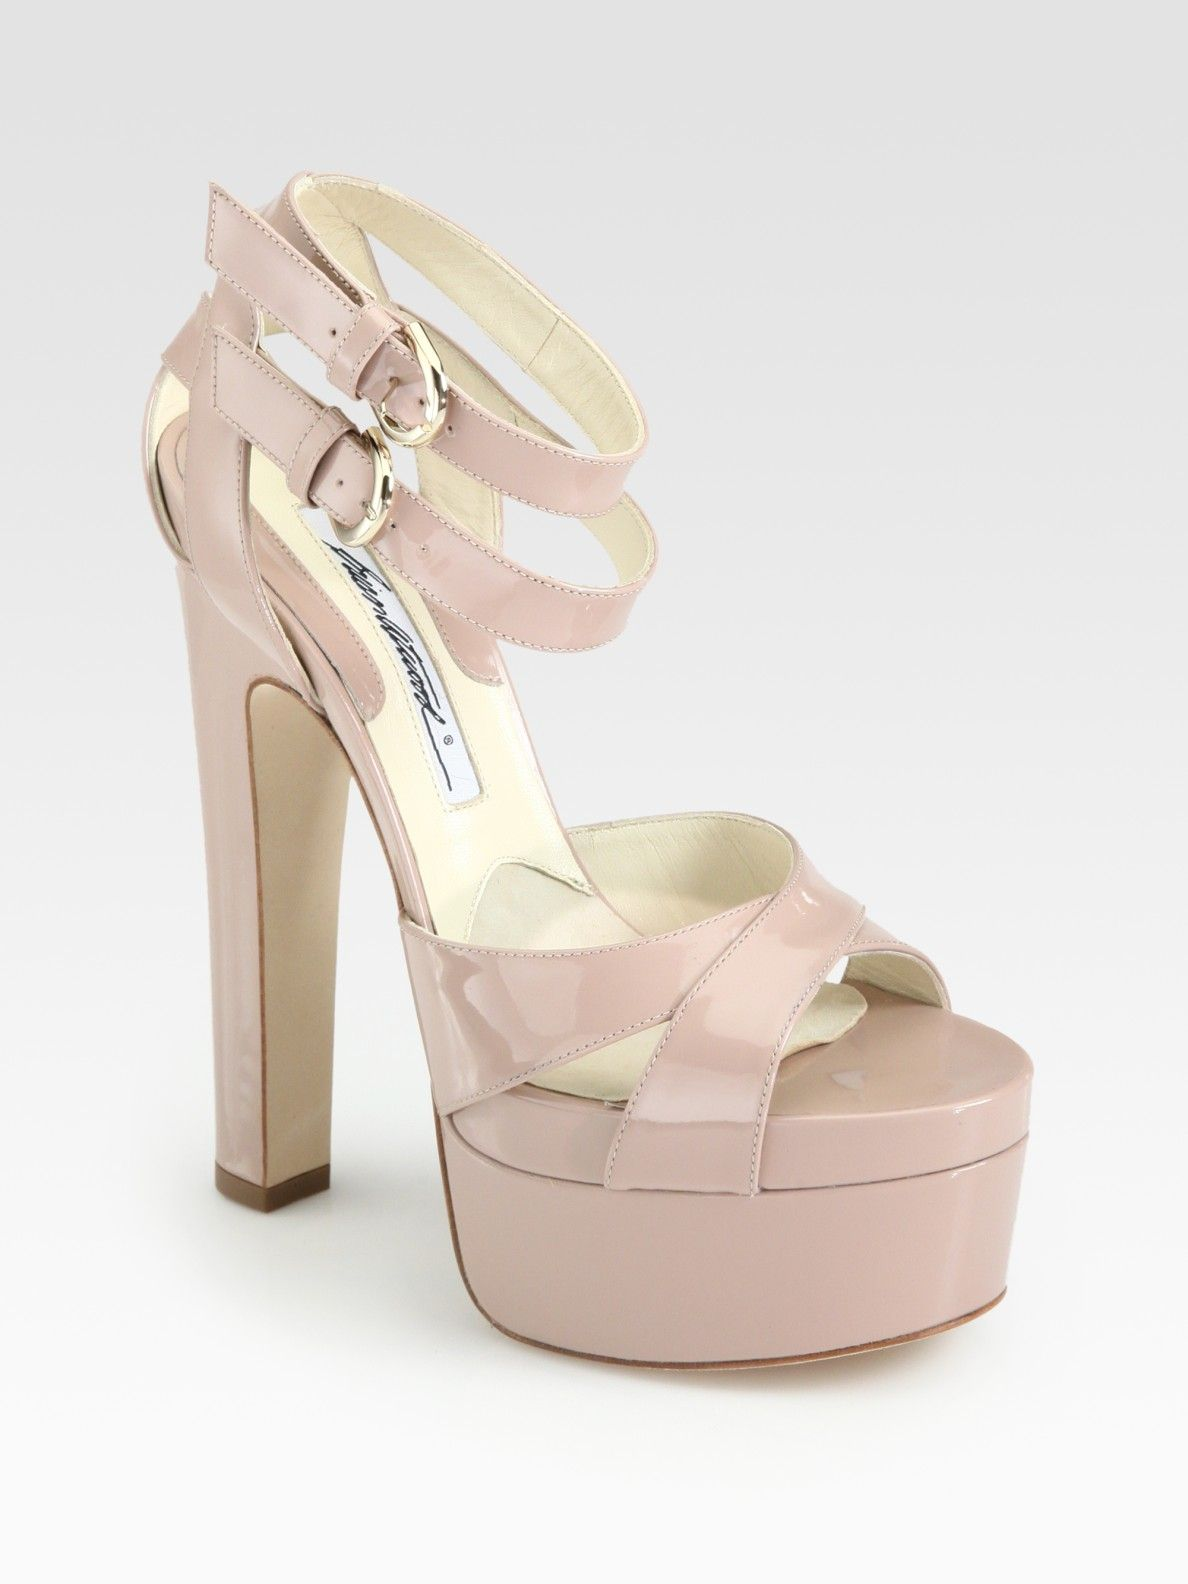 55331d0eaa70 Brian Atwood Lattice Patent Leather Ankle Strap Platform Sandals in Pink  (nude)